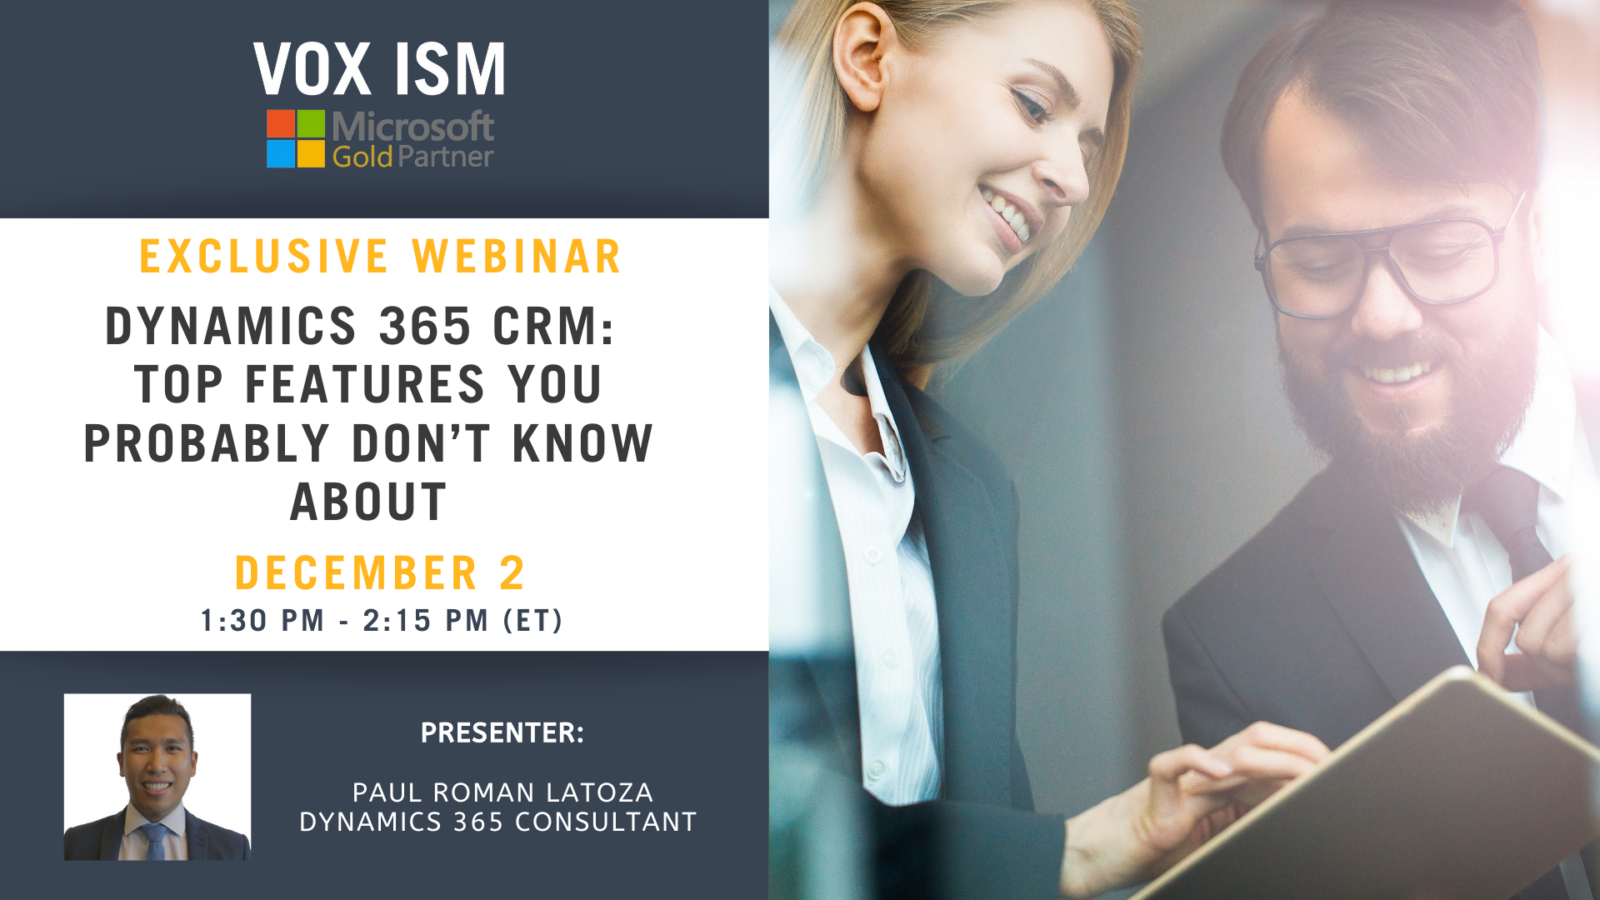 Dynamics 365 CRM: Top features you probably don't know about - December 2 - Webinar